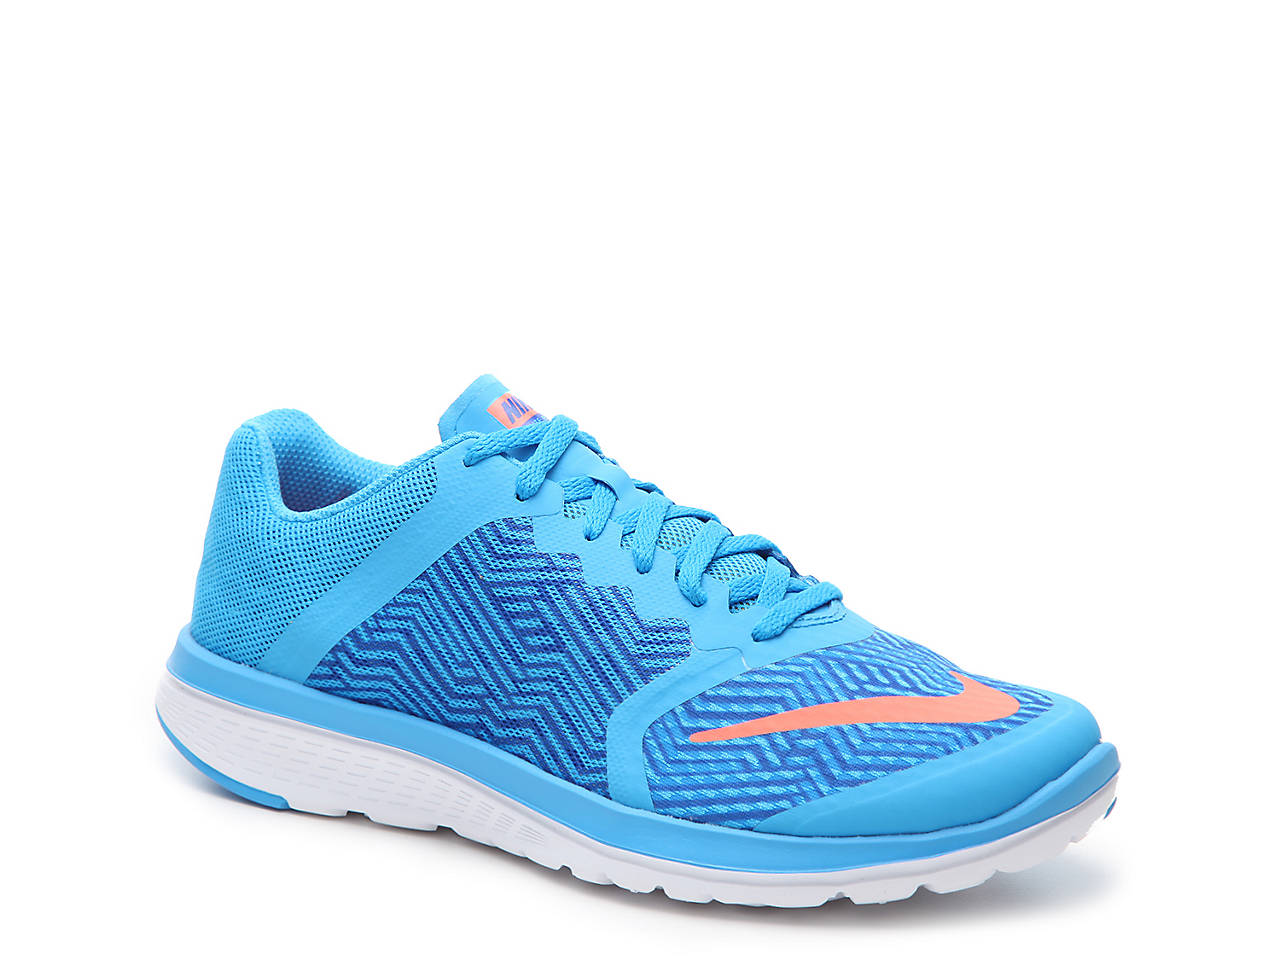 2f8f5f1d0be5 Nike FS Lite Run 3 Premium Lightweight Running Shoe - Women s ...